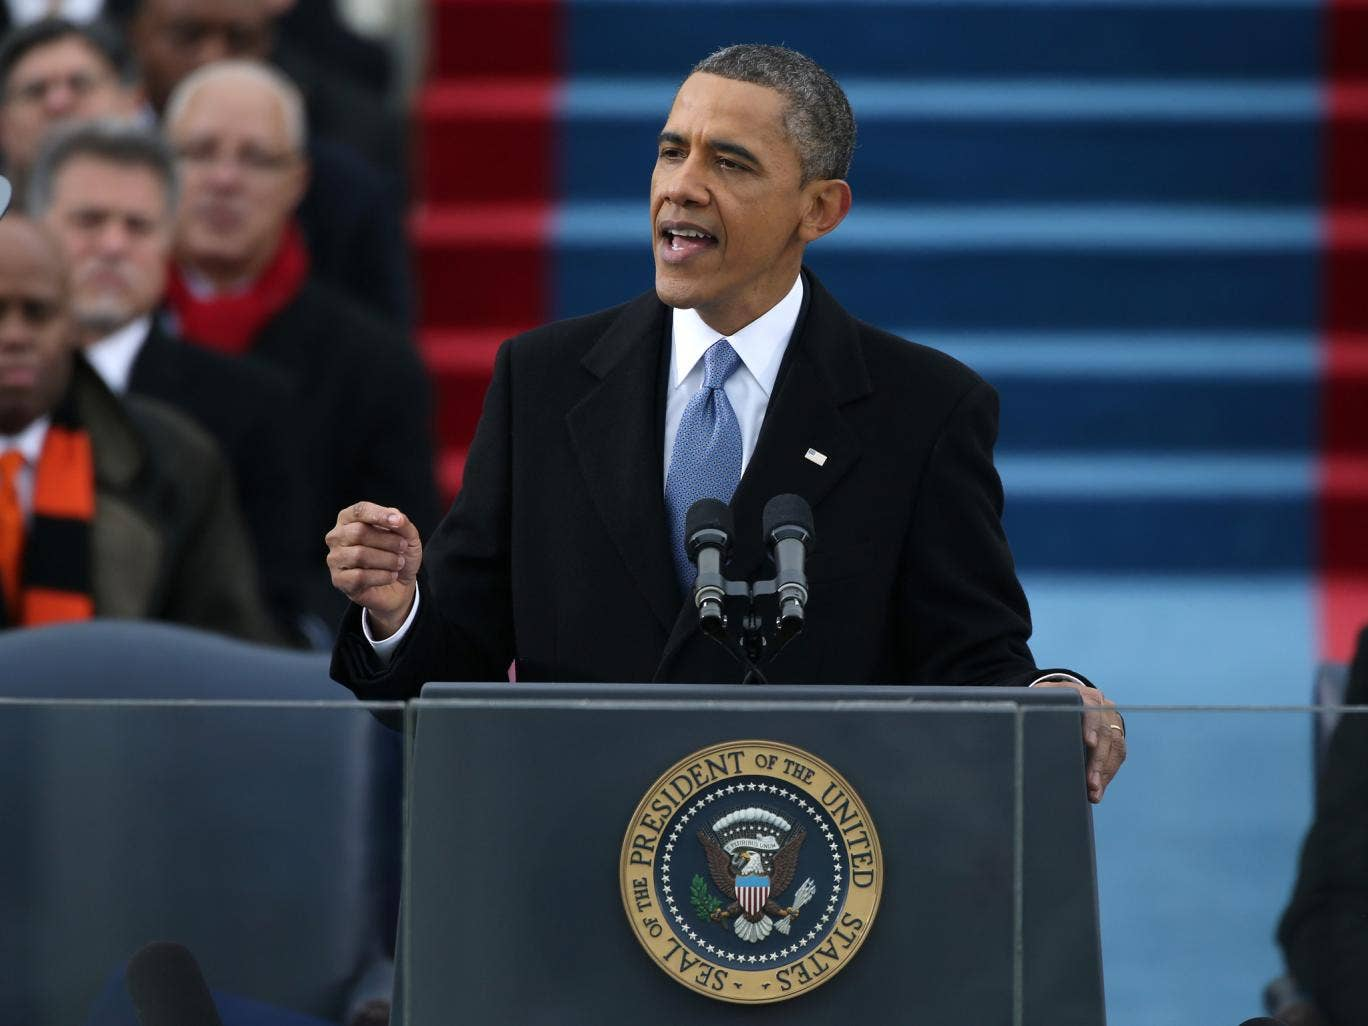 Obama delivers his second inaugural speech